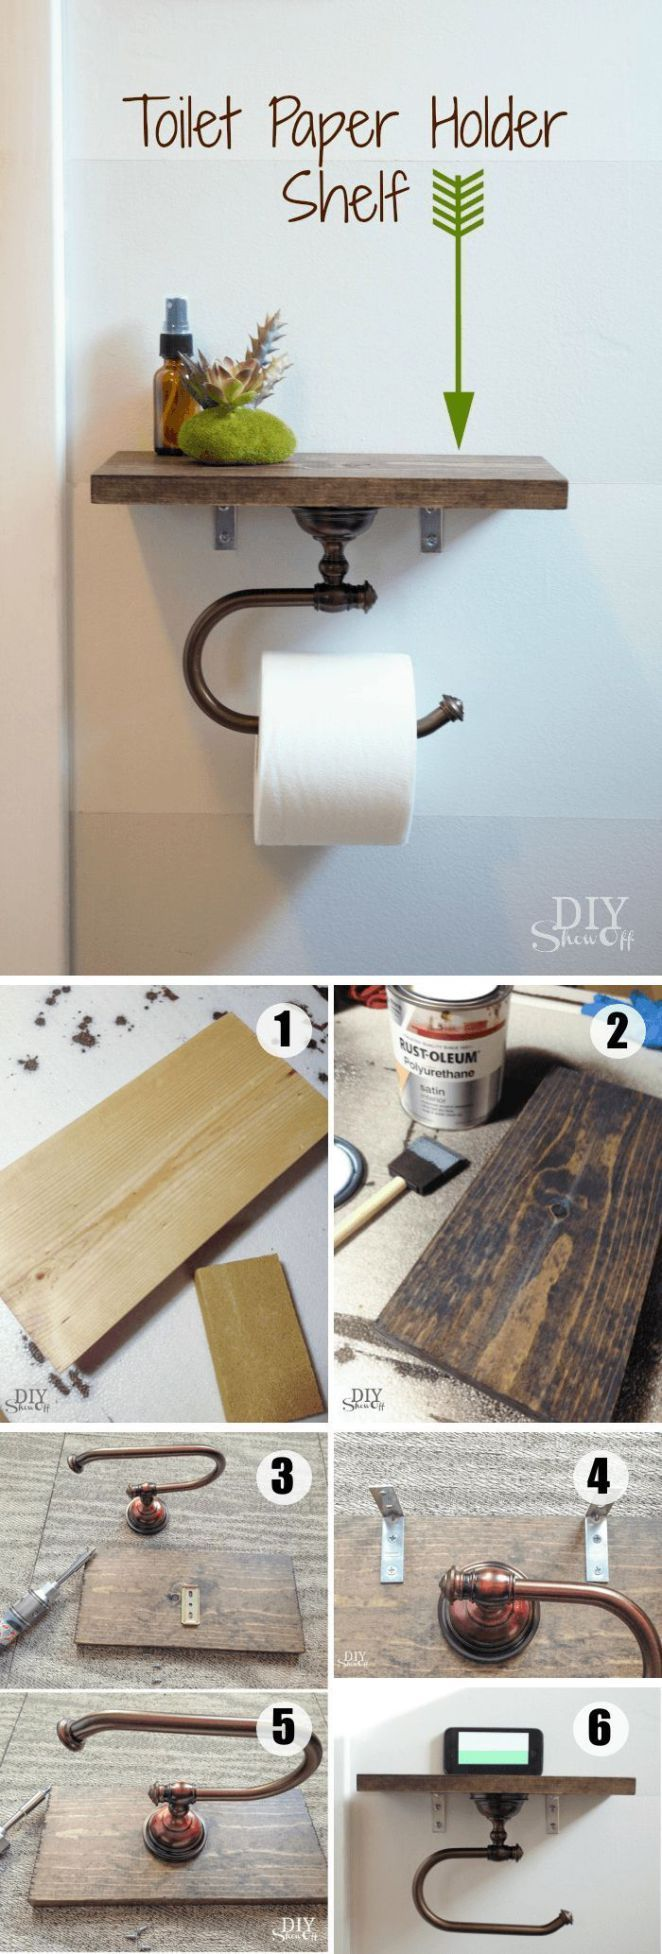 Salle De Bain Dumaplast ~ id e d coration salle de bain diy toilet paper holder with shelf